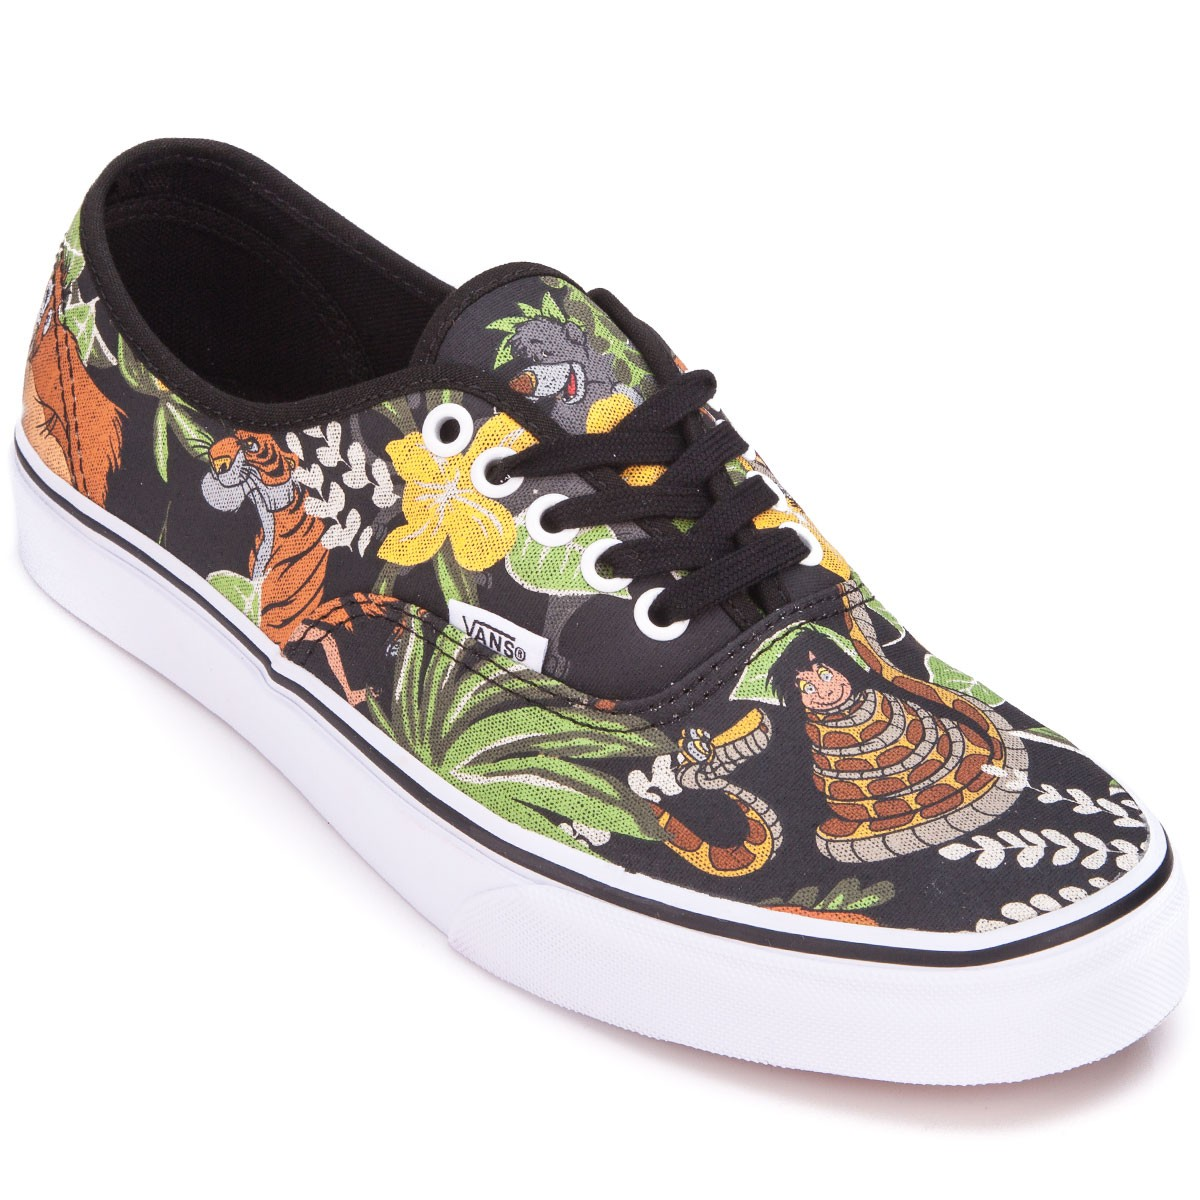 Disney Shoes Womens Vans